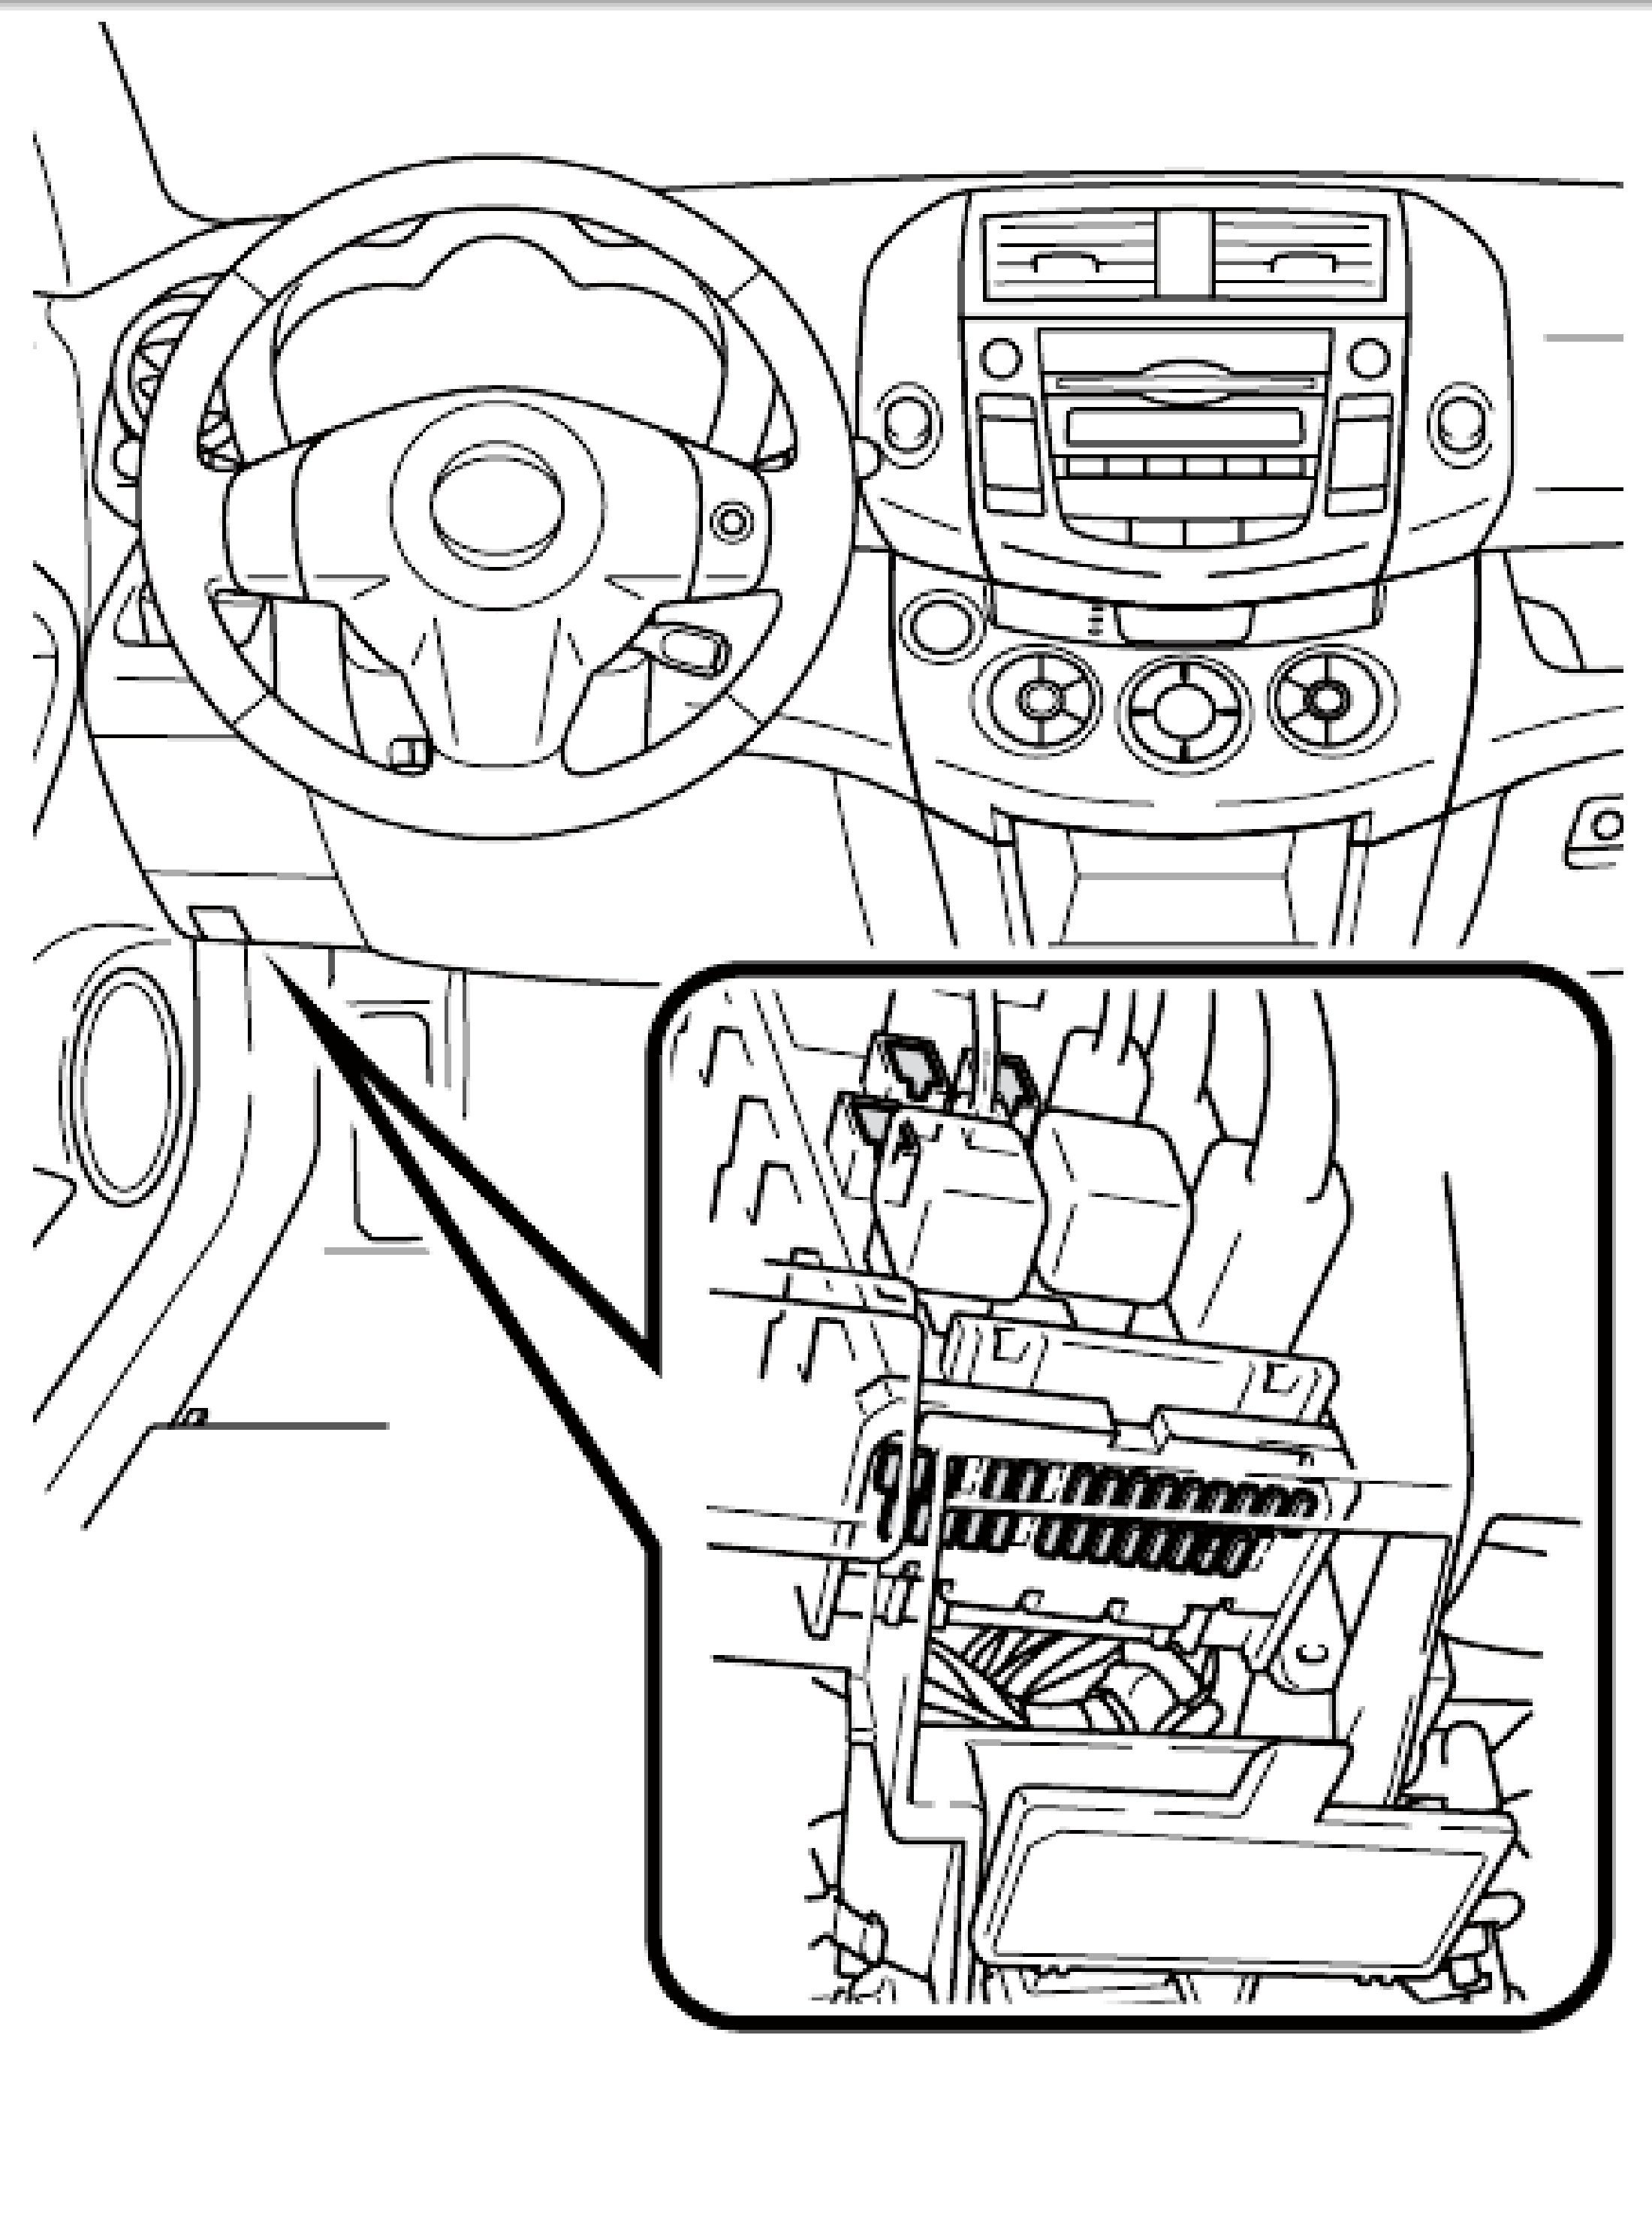 2011 acadia fuse box location